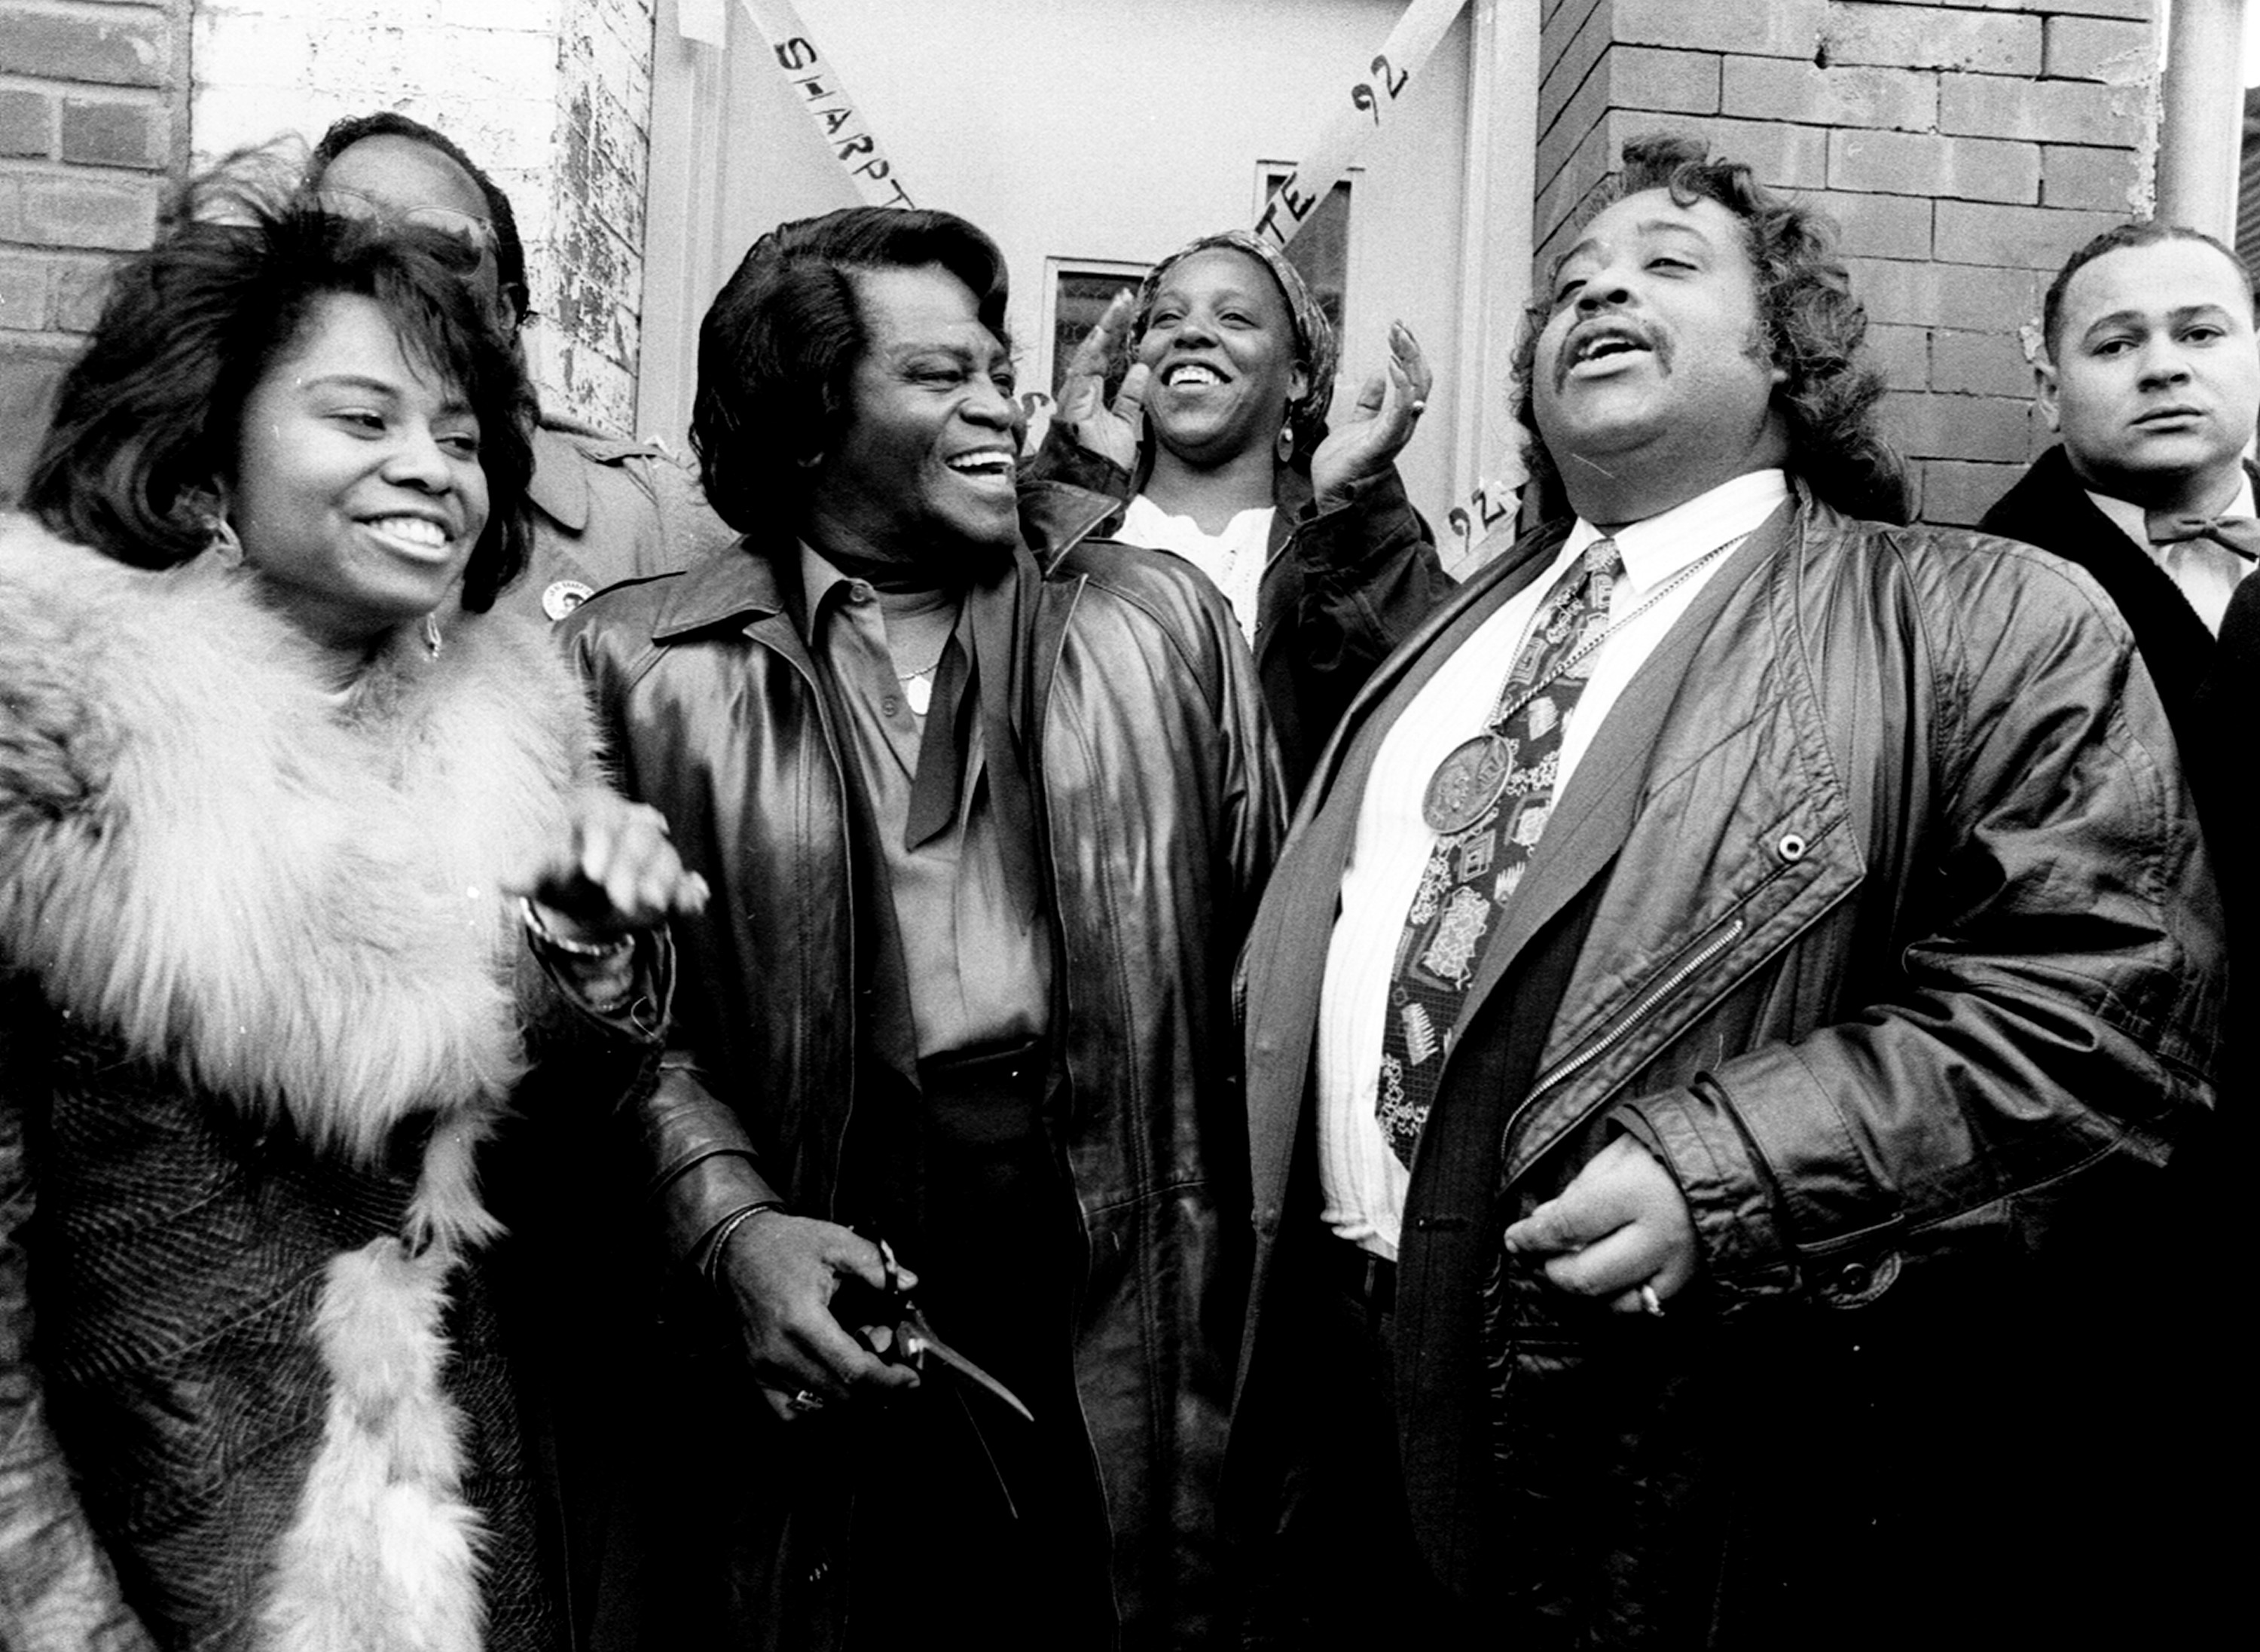 From left: Diana Brown, daughter of James Brown, James Brown and Al Sharpton at ribbon cutting ceremony for Sharpton's senate race in New York City on Feb. 26, 1992.